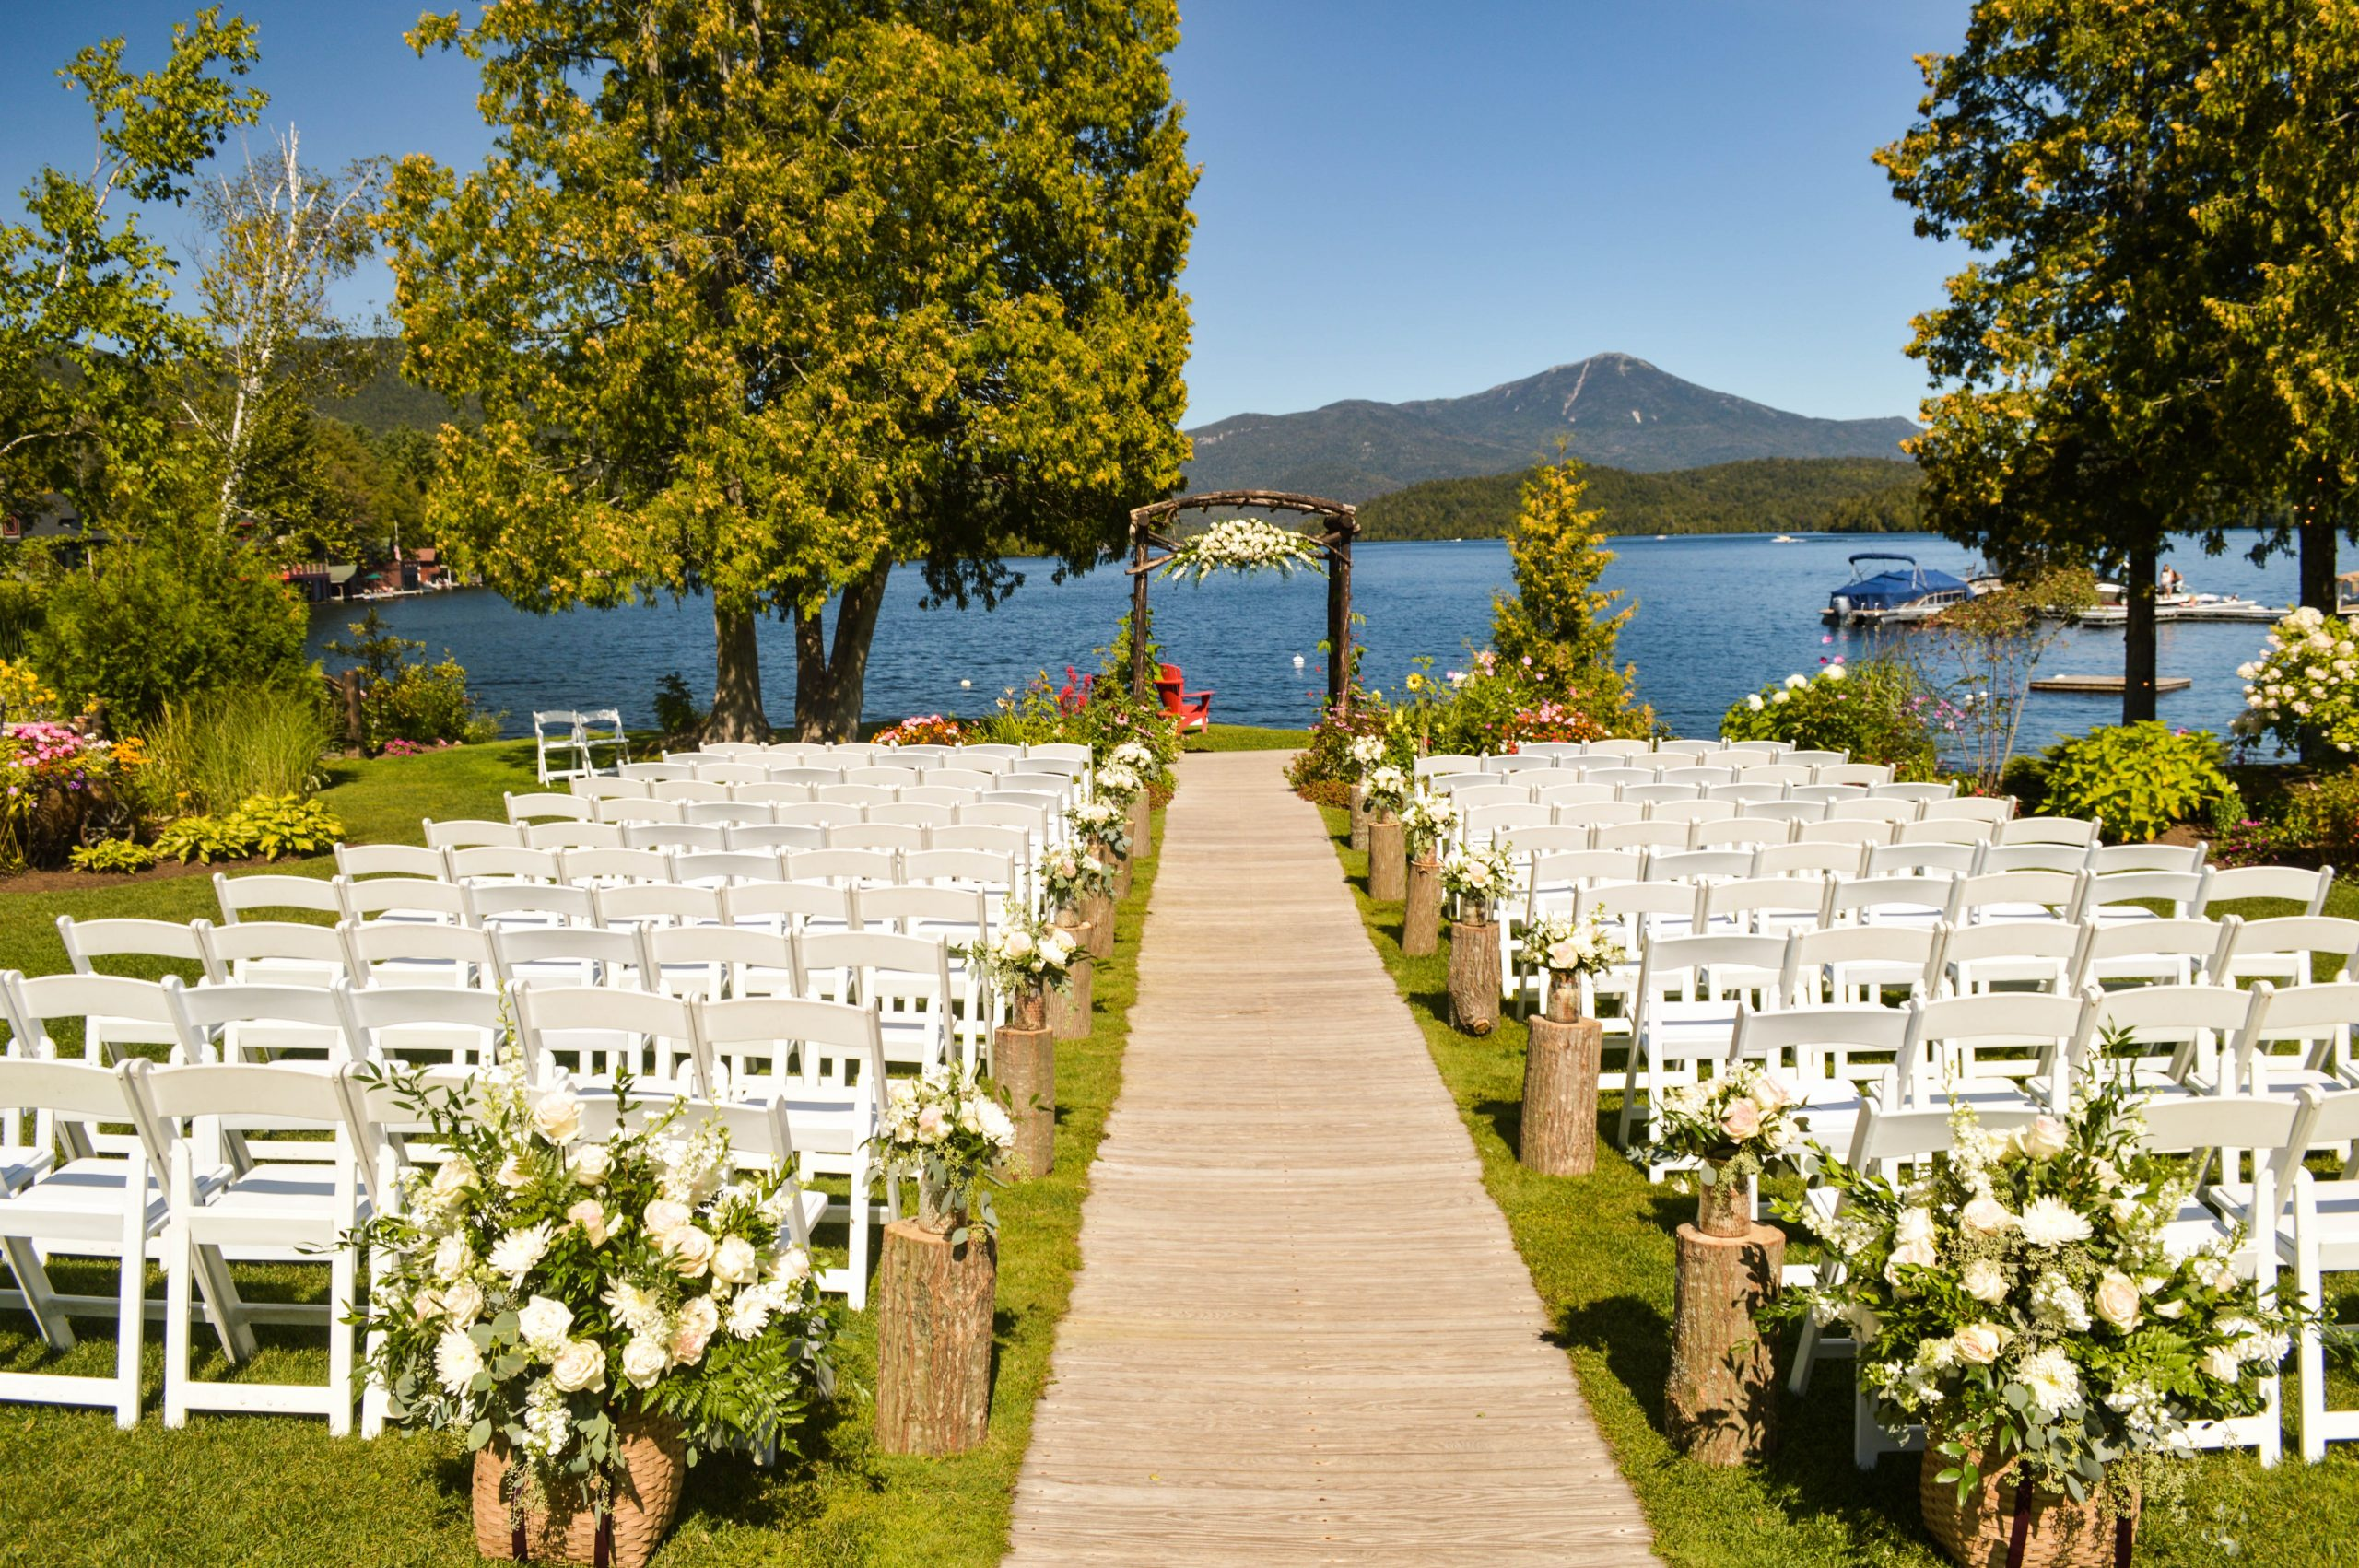 outdoor wedding venue with chairs and alter overlooking lake